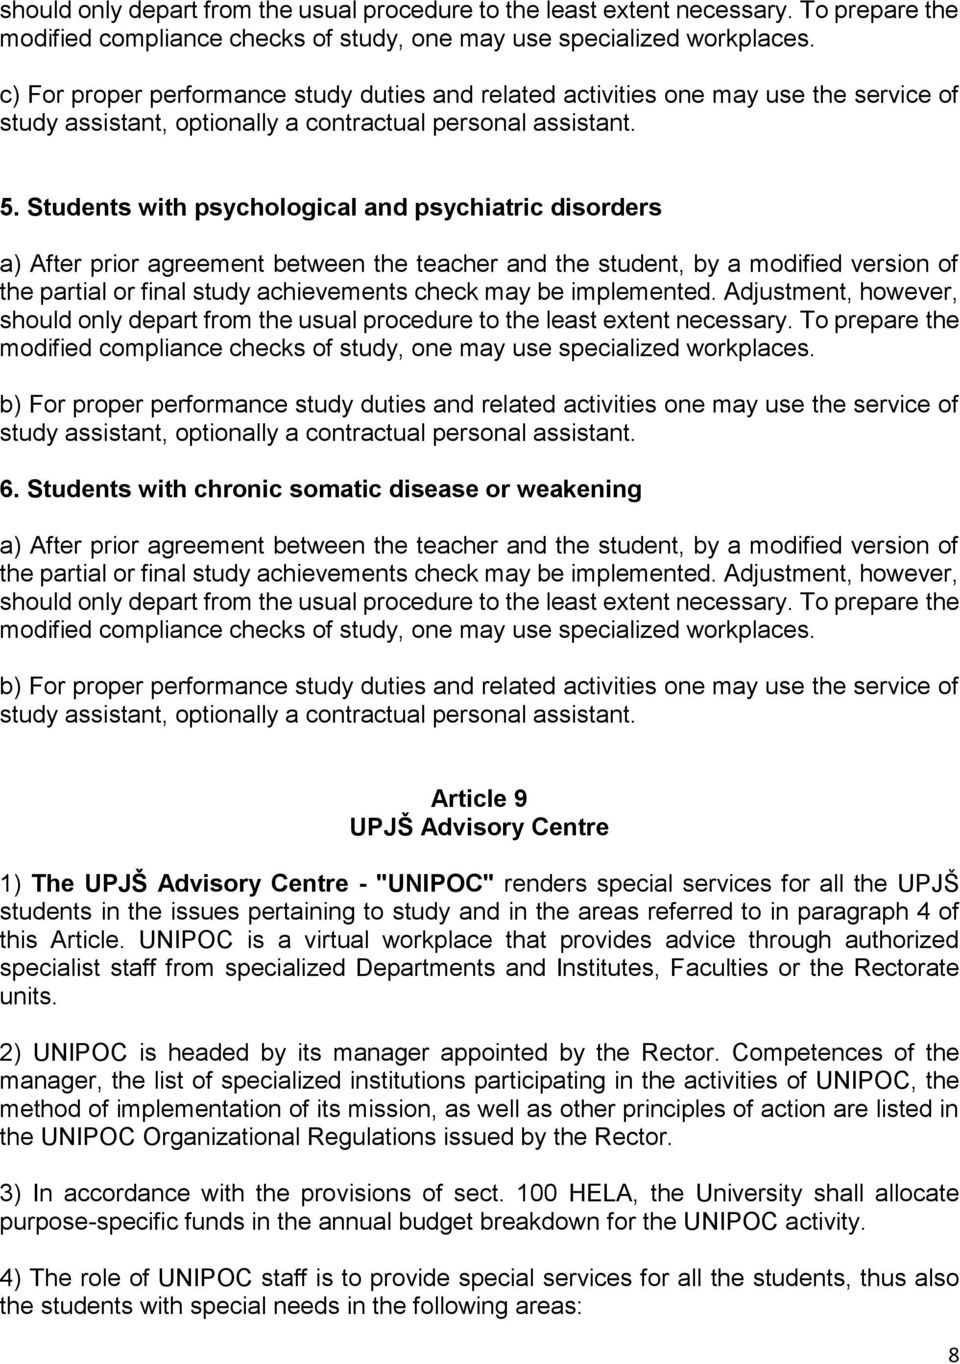 Students with psychological and psychiatric disorders a) After prior agreement between the teacher and the student, by a modified version of the partial or final study achievements check may be